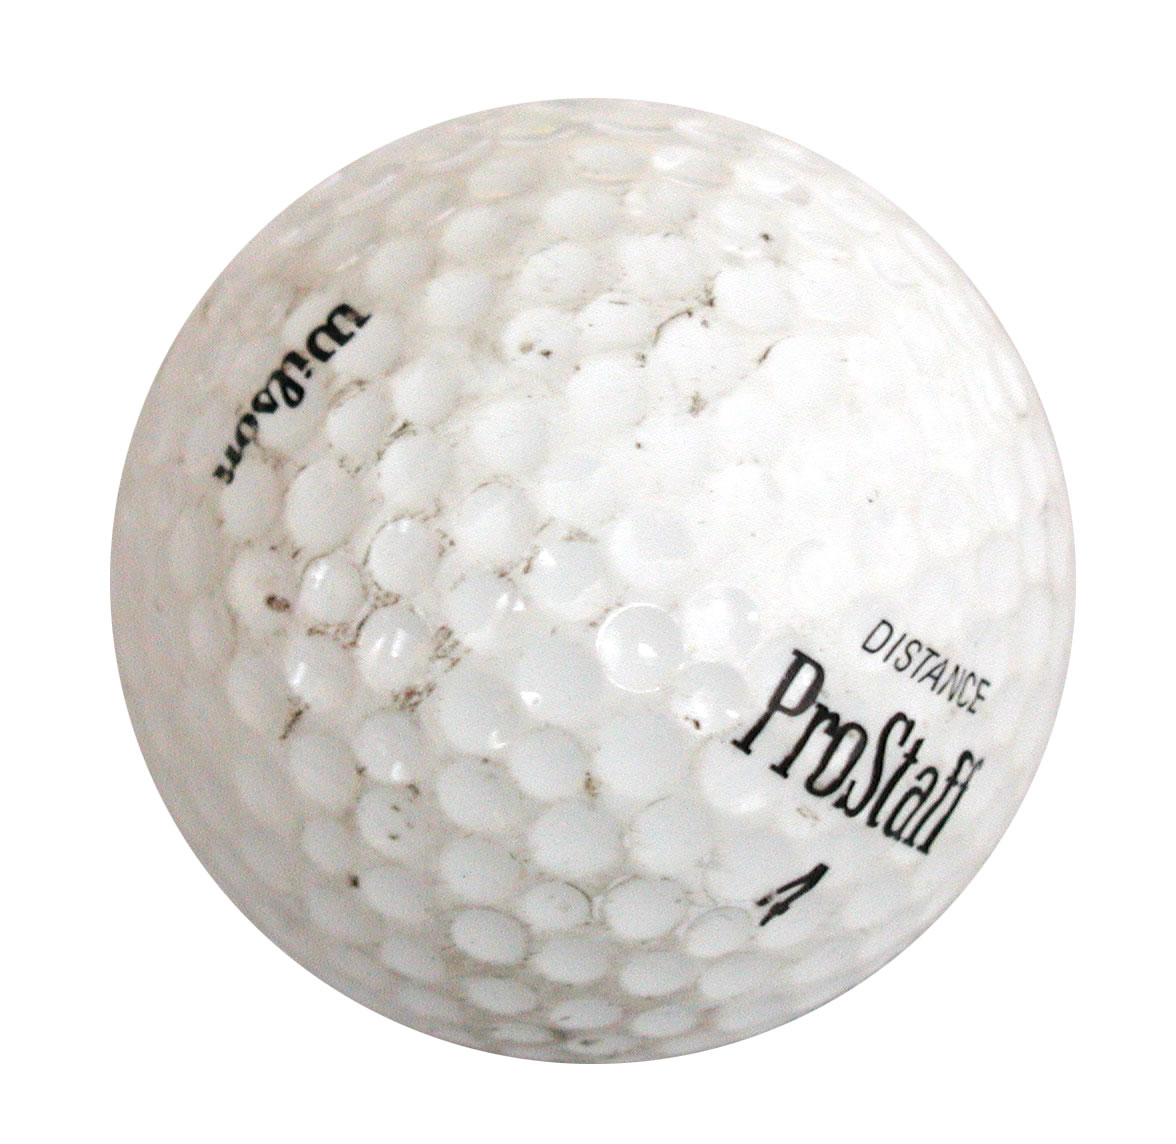 an introduction to the history of the first golf balls The most substantive and influential development in golf equipment in this century, after the invention of the three-piece golf ball, was the introduction of the steel shaft macgregor was the first to use it in its equipment, and was thereby an integral part of the revolution it caused in equipment and how the game was played.